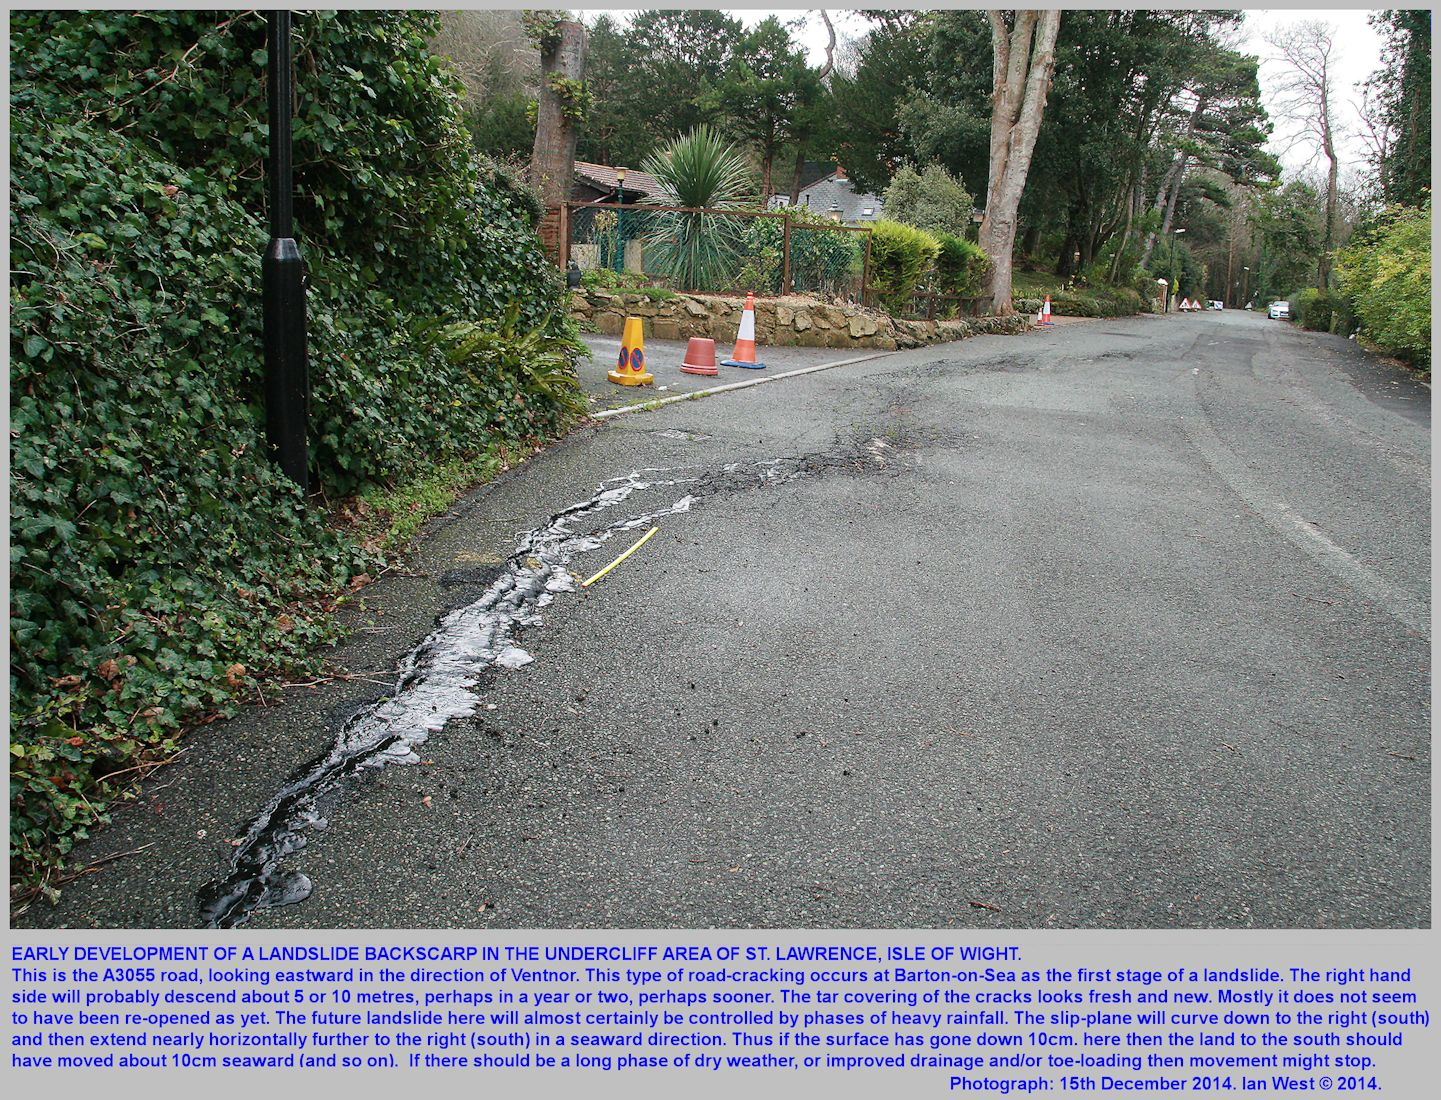 An incipient curved backscarp of a new landslide in the A3055 road at St. Lawrence, Isle of Wight, 14th December 2014